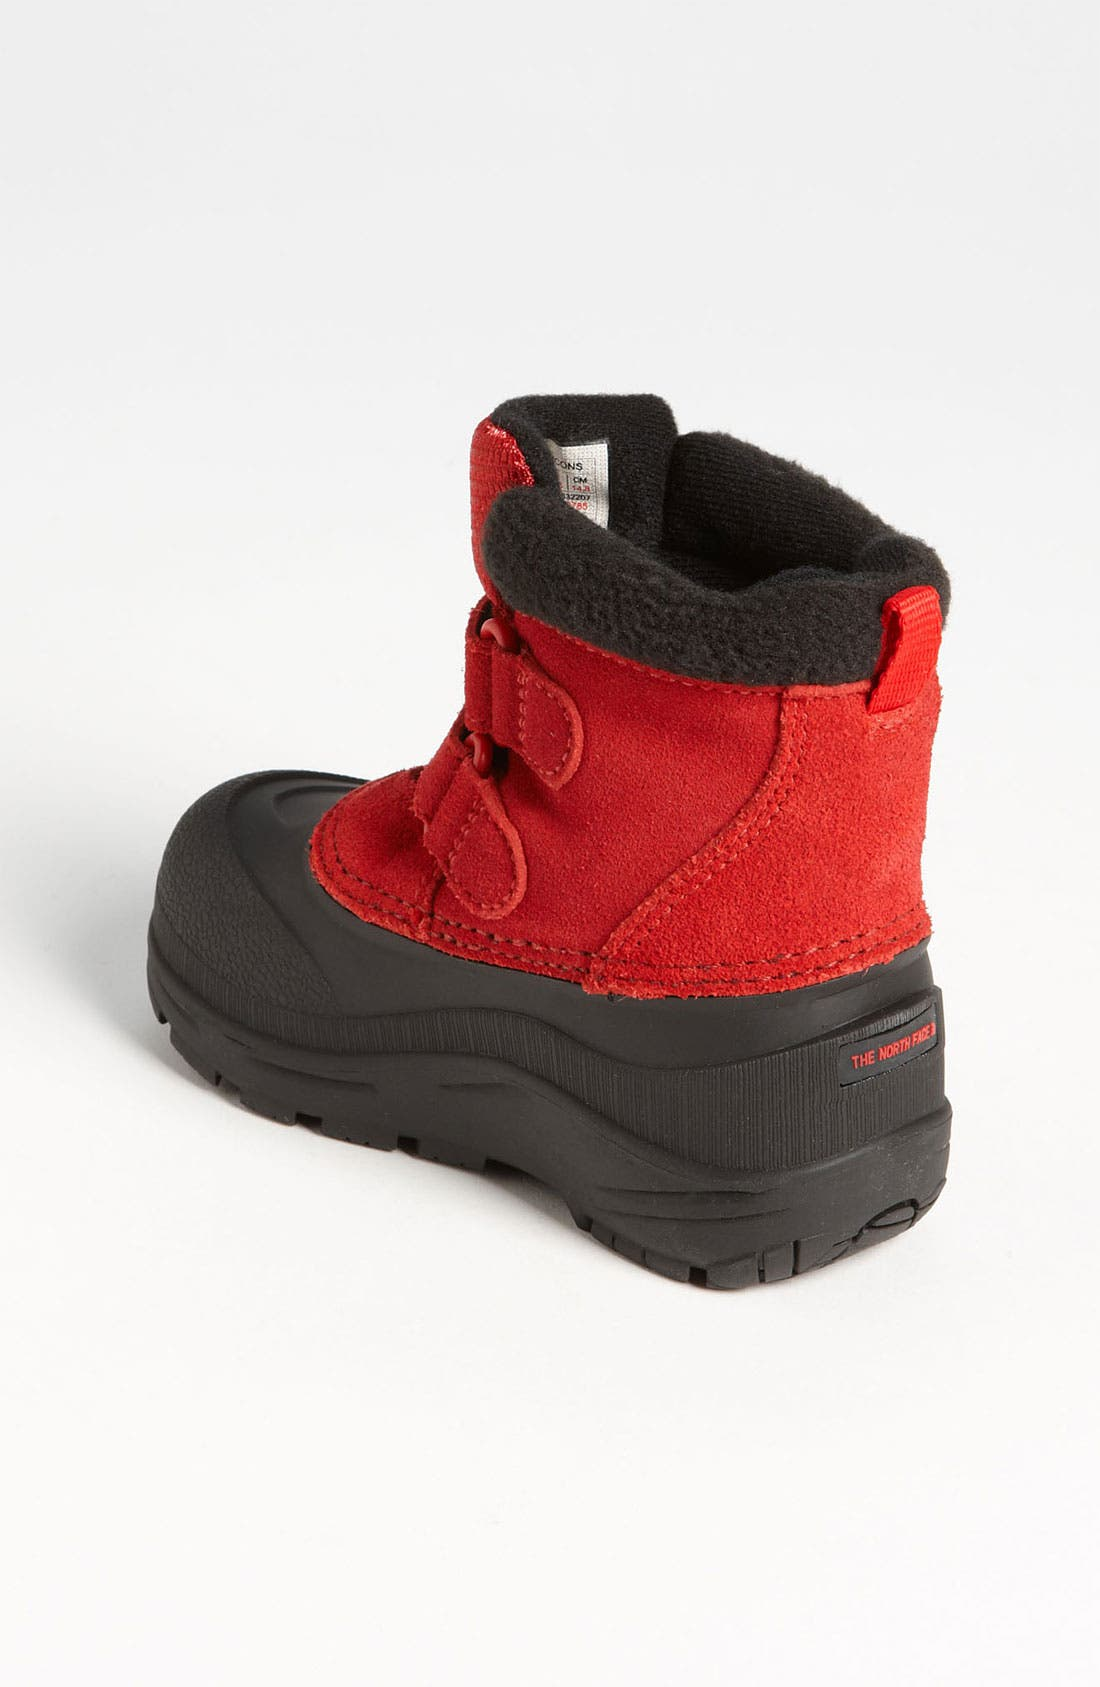 Alternate Image 2  - The North Face 'Chilkat' Boots (Walker & Toddler)